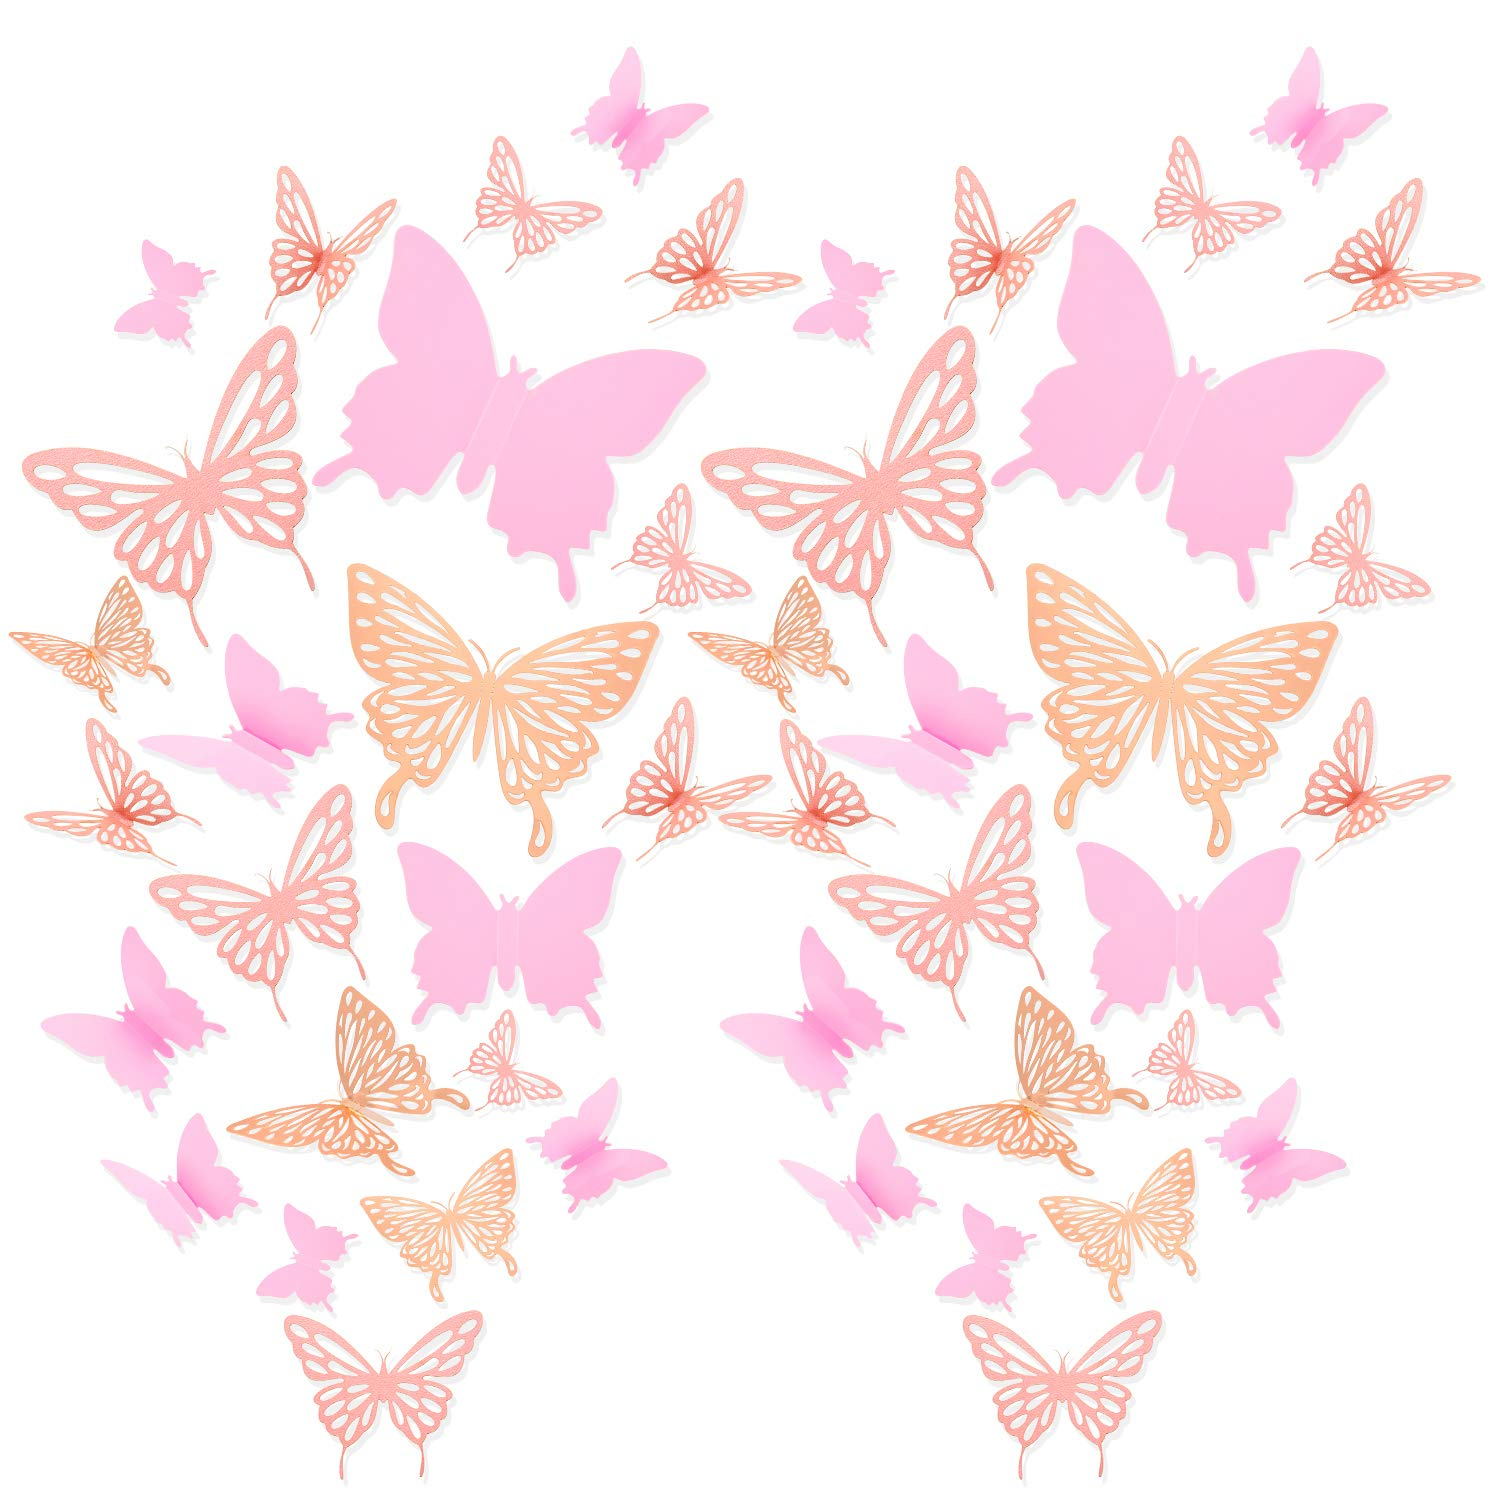 196 Pieces 3D Butterfly Wall Decoration Sticker Hollow Metallic Butterfly Decor Paper Butterflies Decor Mural Decal DIY Butterfly Wall Art Craft for Bedroom Wall Wedding, 3 Styles (Rose Gold, Pink)